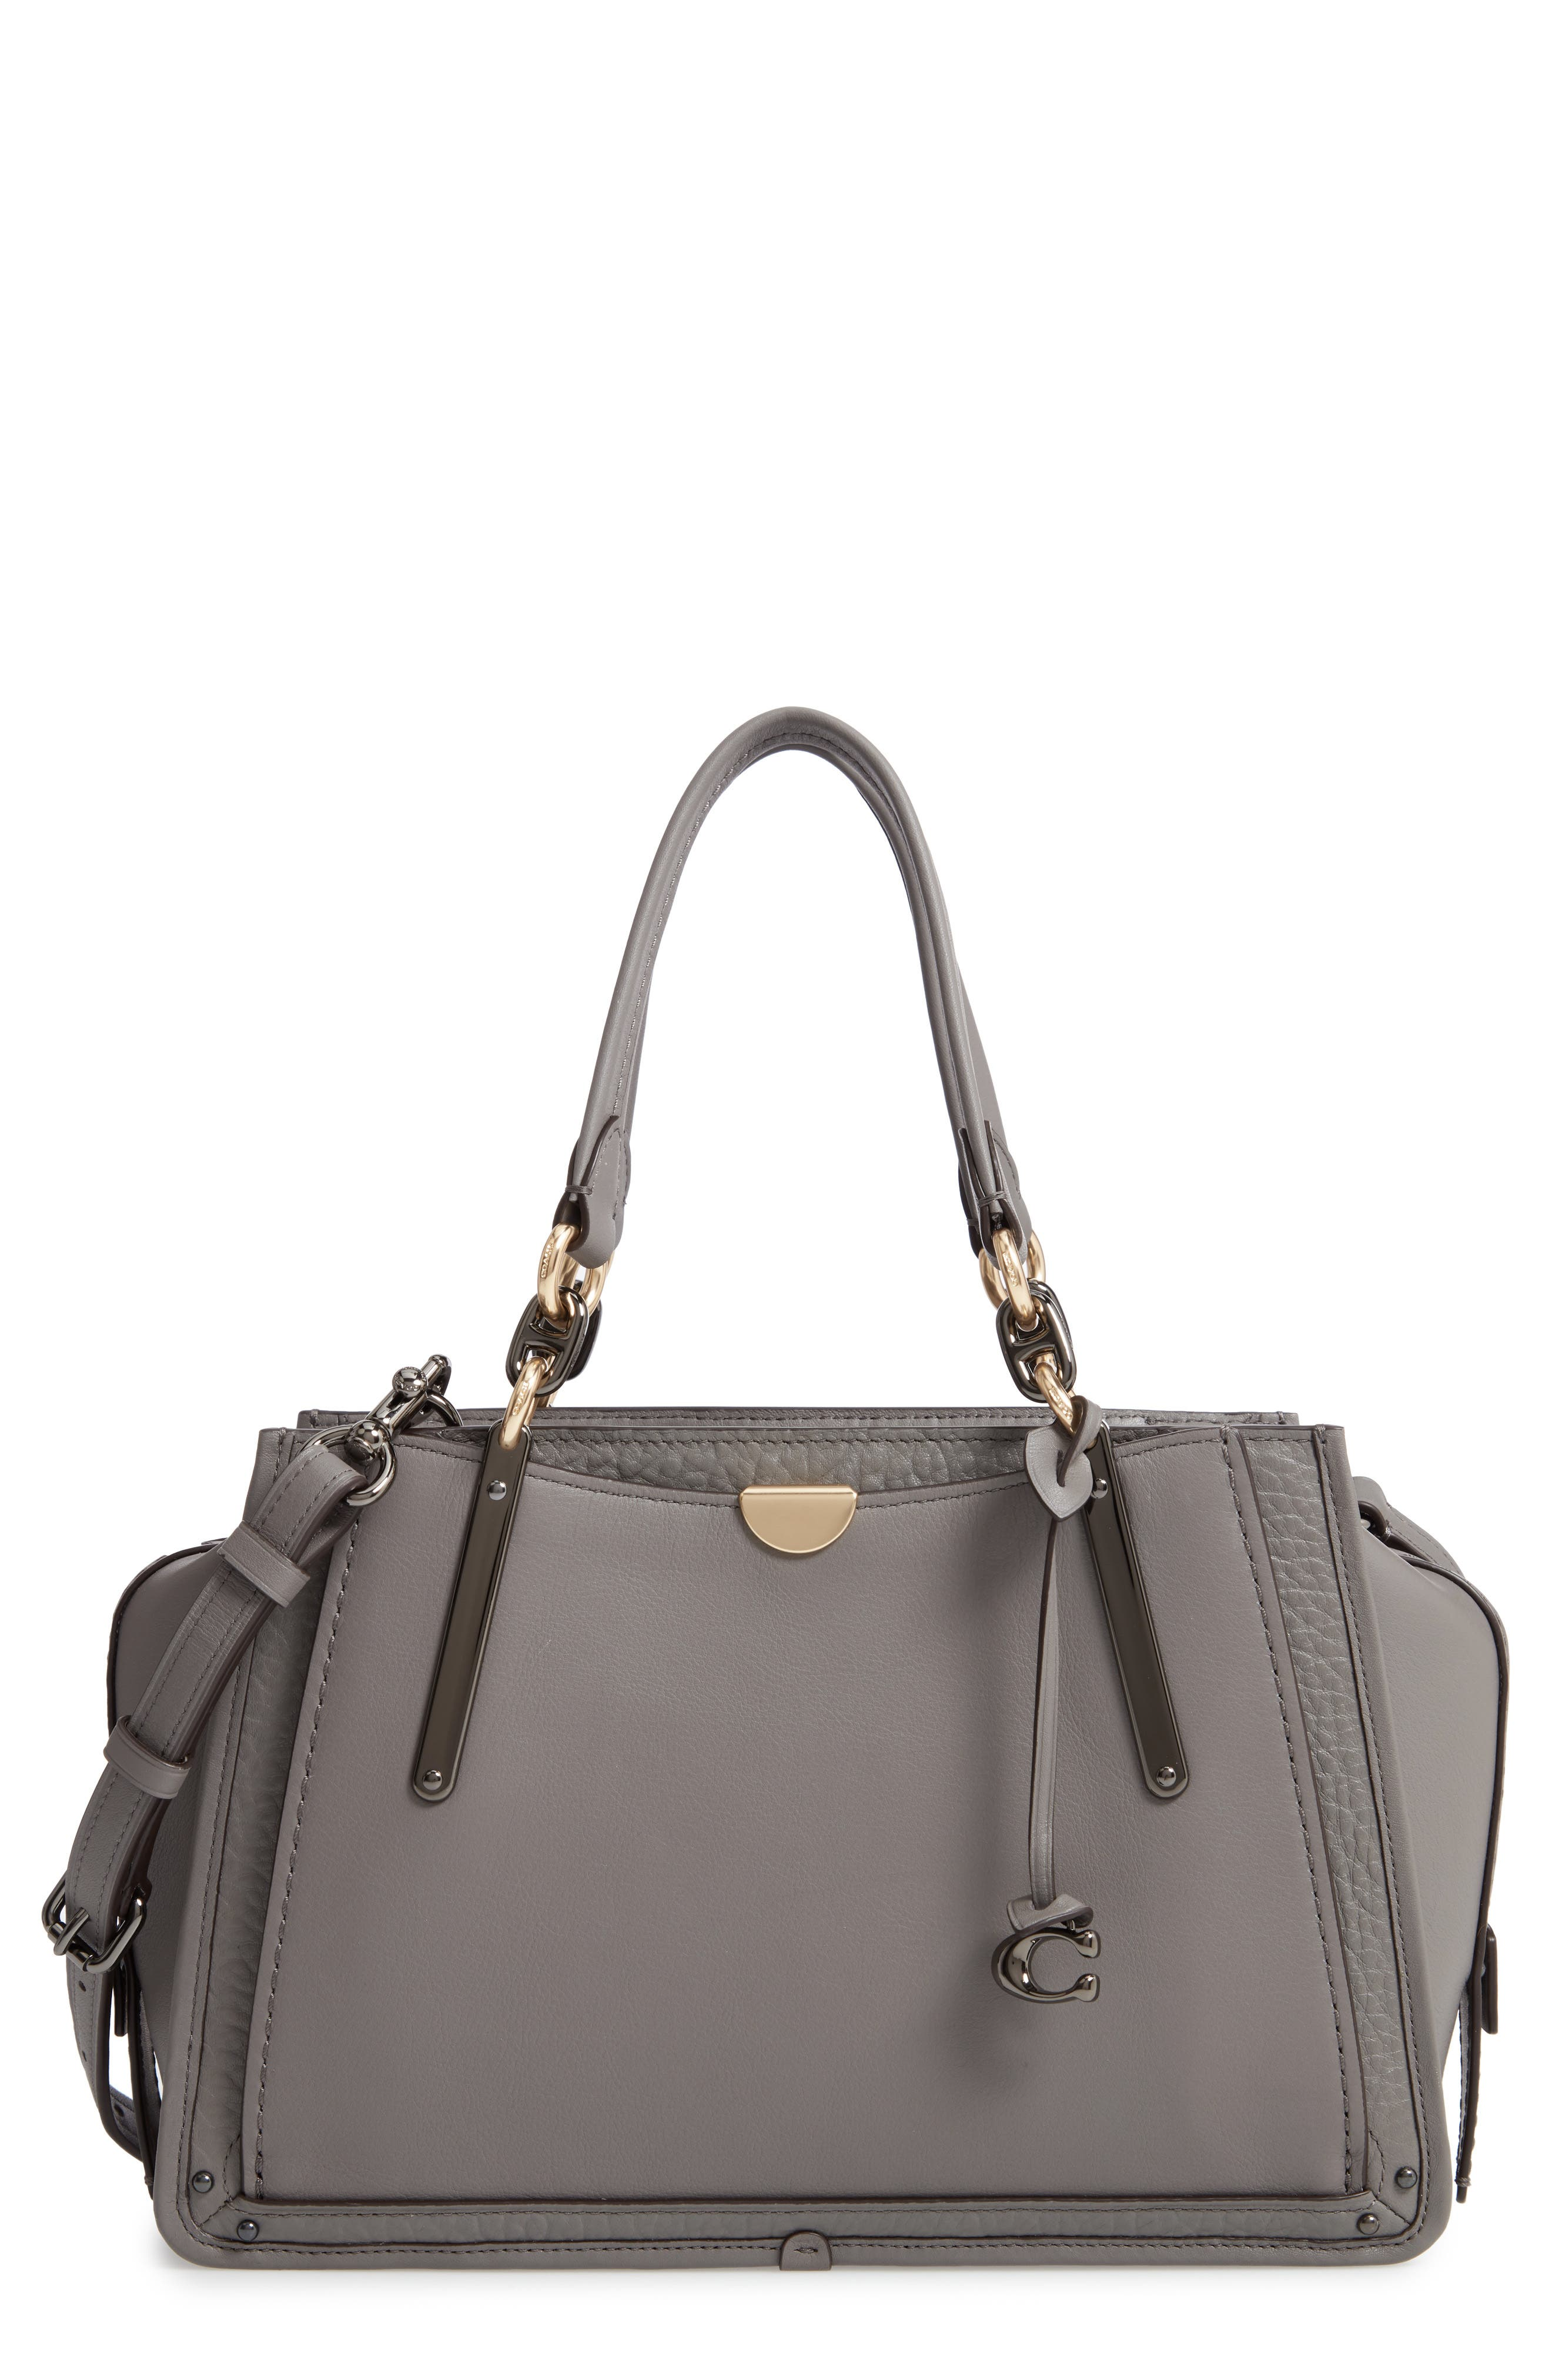 COACH, Dreamer Mixed Leather Bag, Main thumbnail 1, color, HEATHER GREY